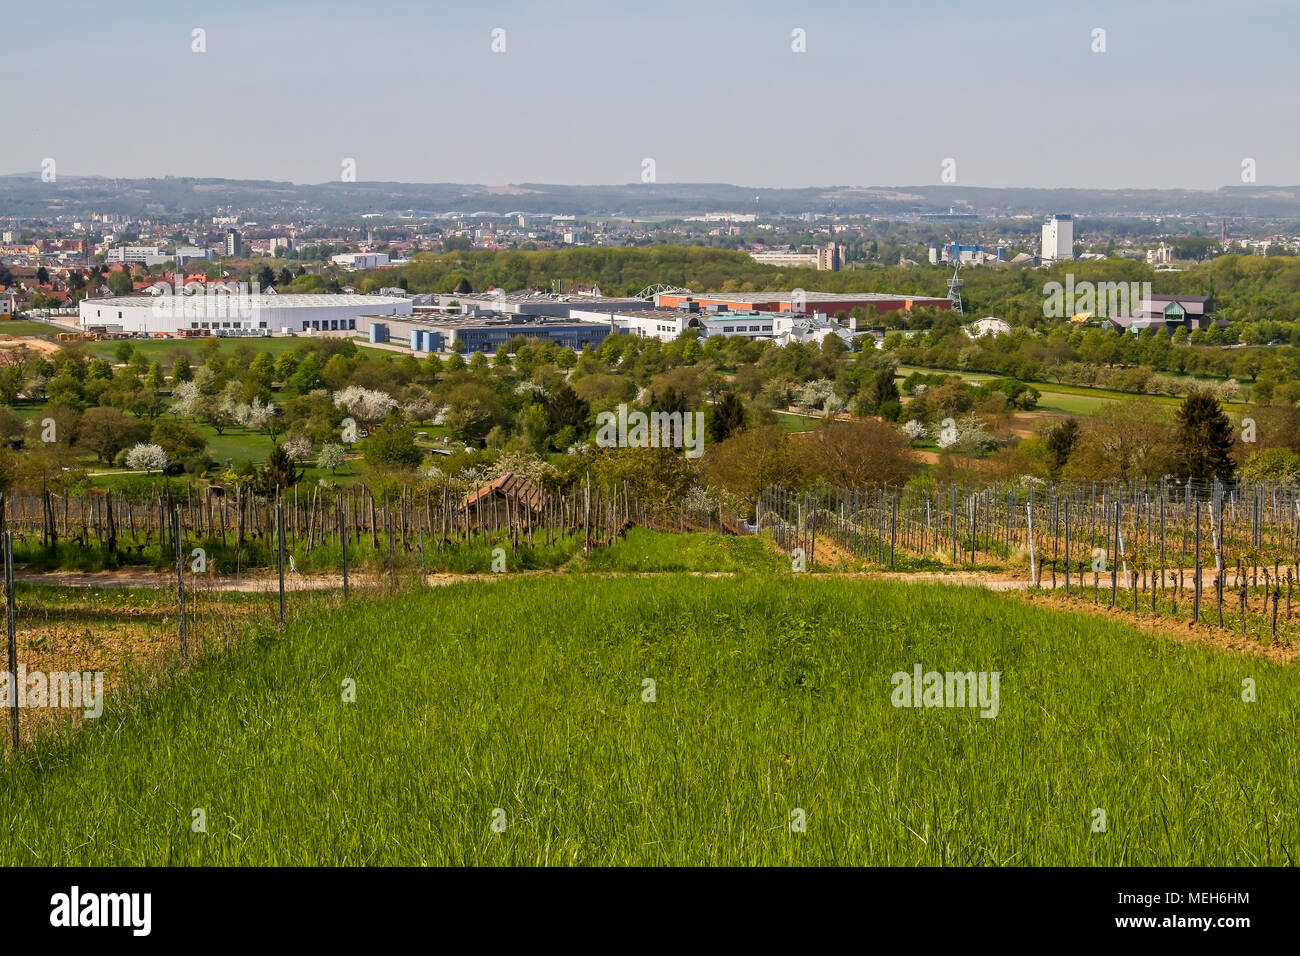 Elevated view of Vitra Campus and factory in Weil am Rhein, Germany - Stock Image